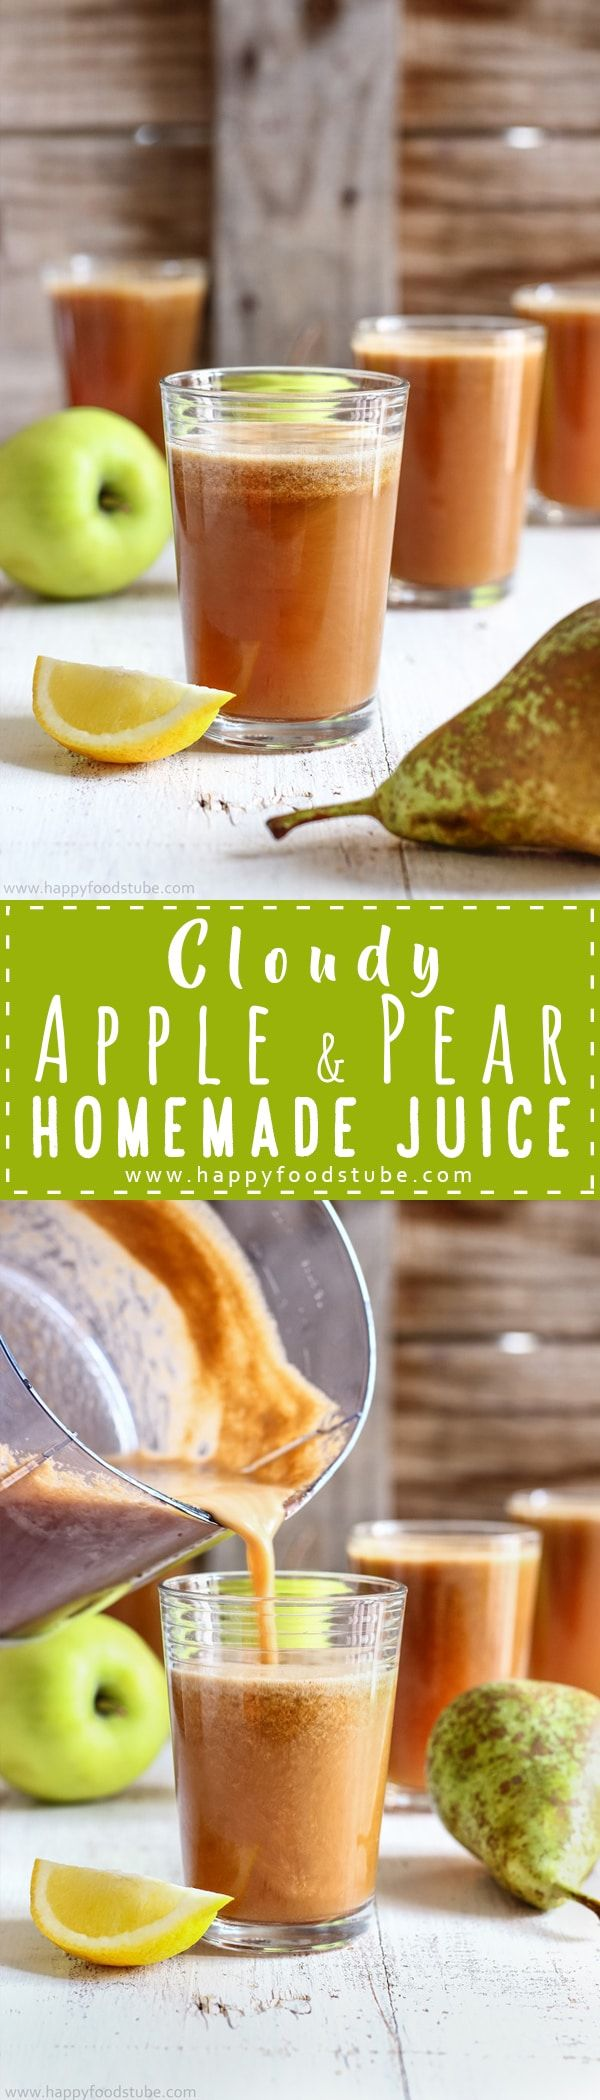 Healthy cloudy apple pear juice recipe. Nothing is better than a glass of homemade fresh juice. Easy juicing idea. Only 2-ingredients, ready in 5-minutes and tastes amazing via @happyfoodstube